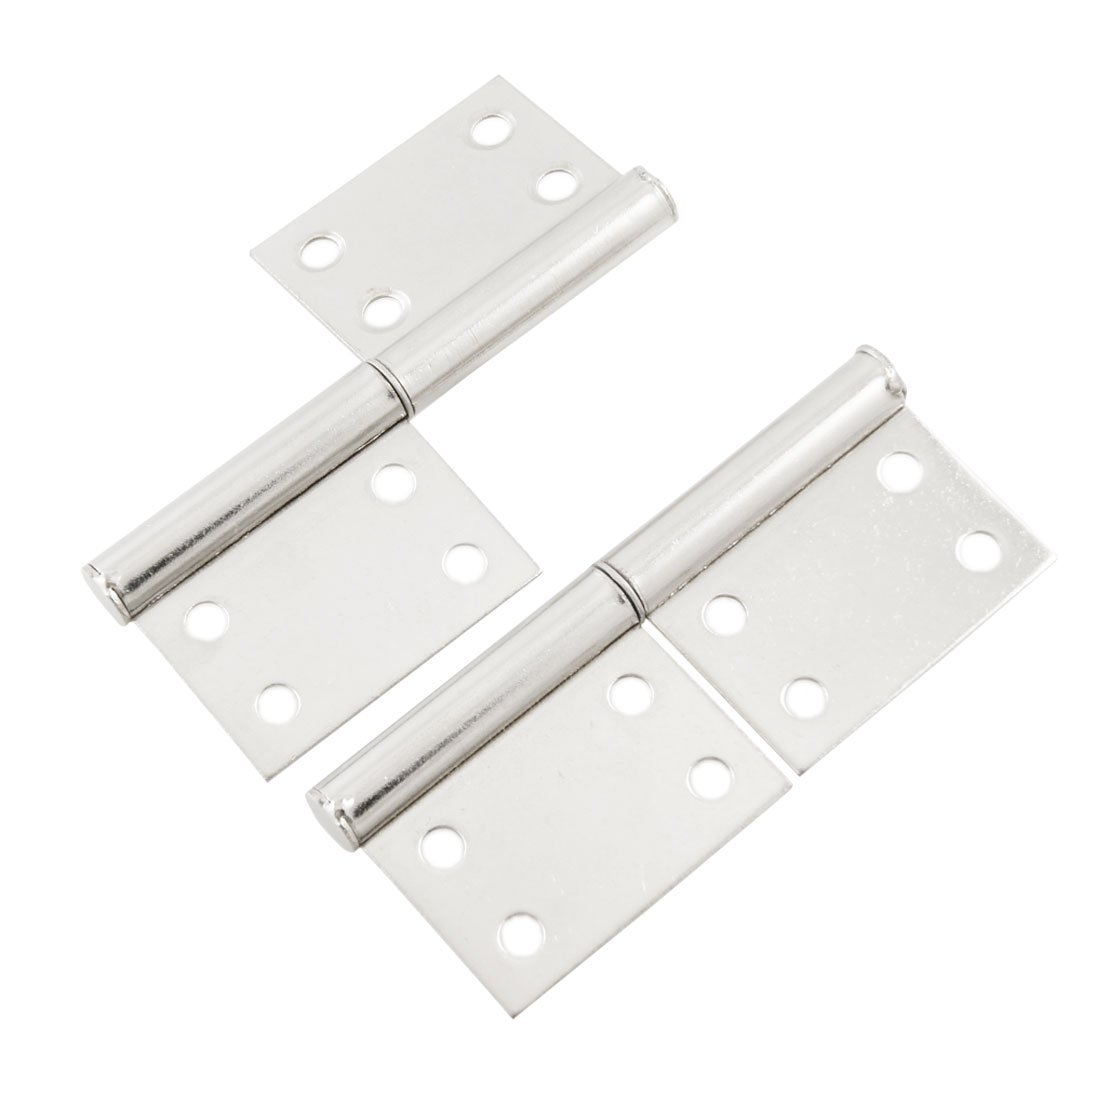 2pcs Silver Stainless Steel Window Gate Door Flag Hinges 9.4cm 50 percent off stainless steel gate door wall suction magnetic p41 strong resistance